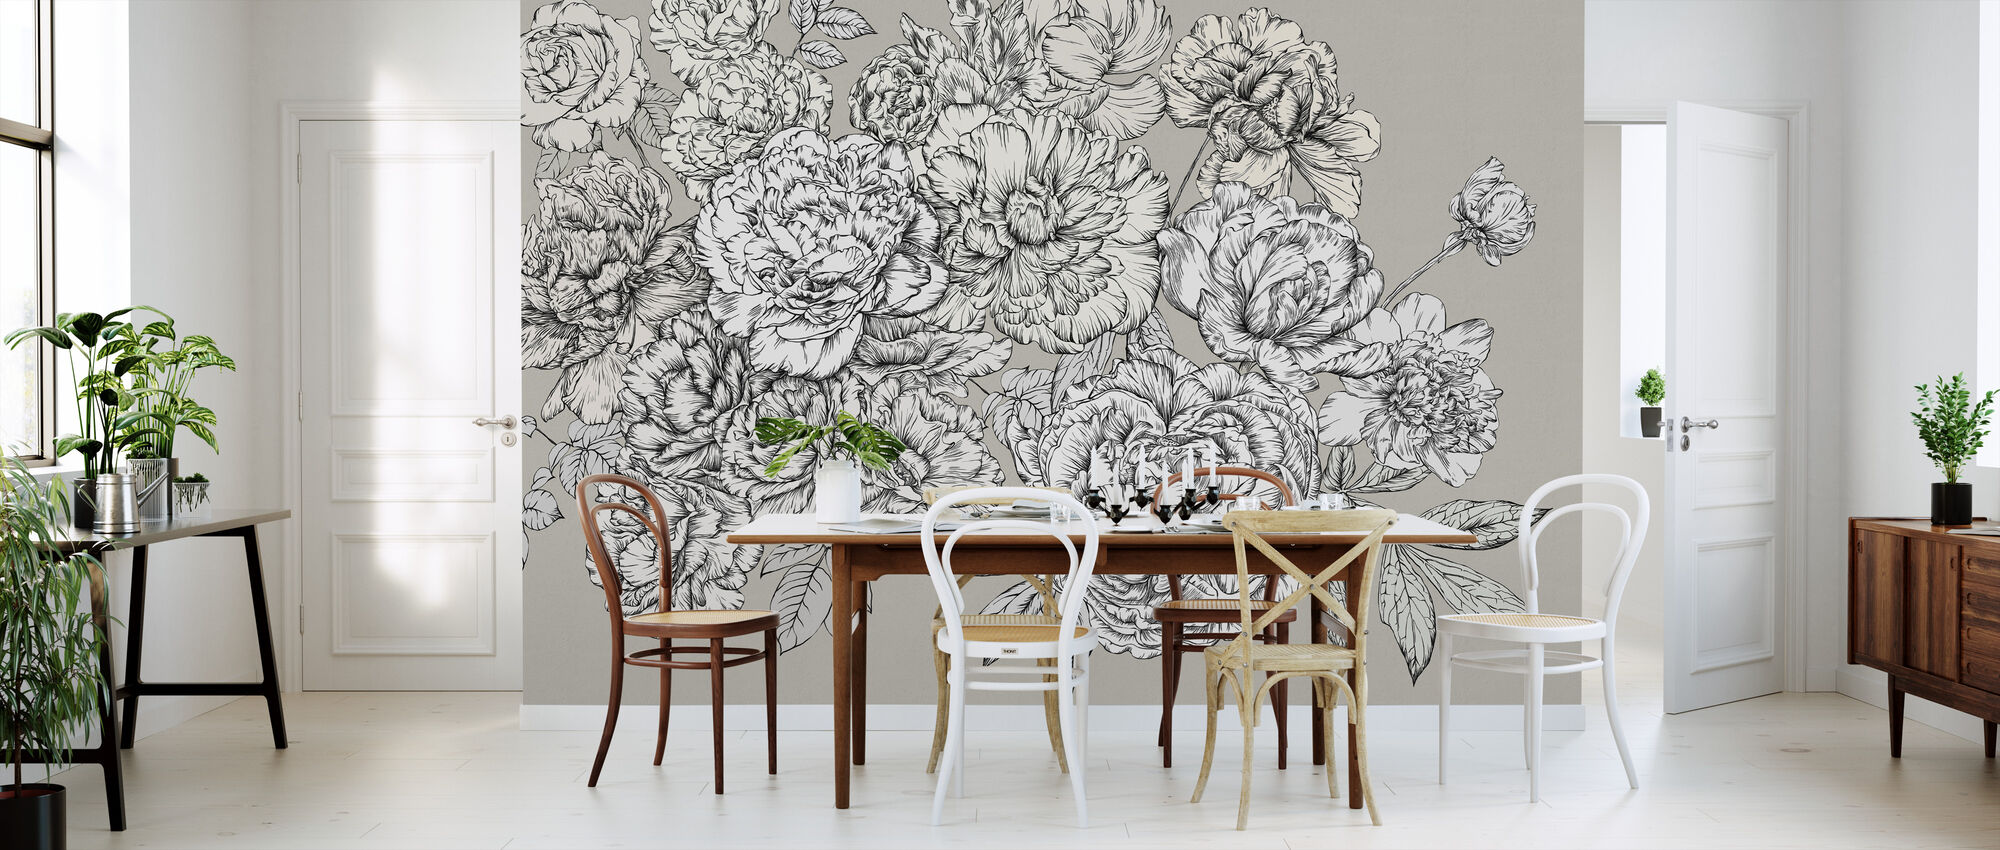 Blossom Outline - Requisite - Wallpaper - Kitchen